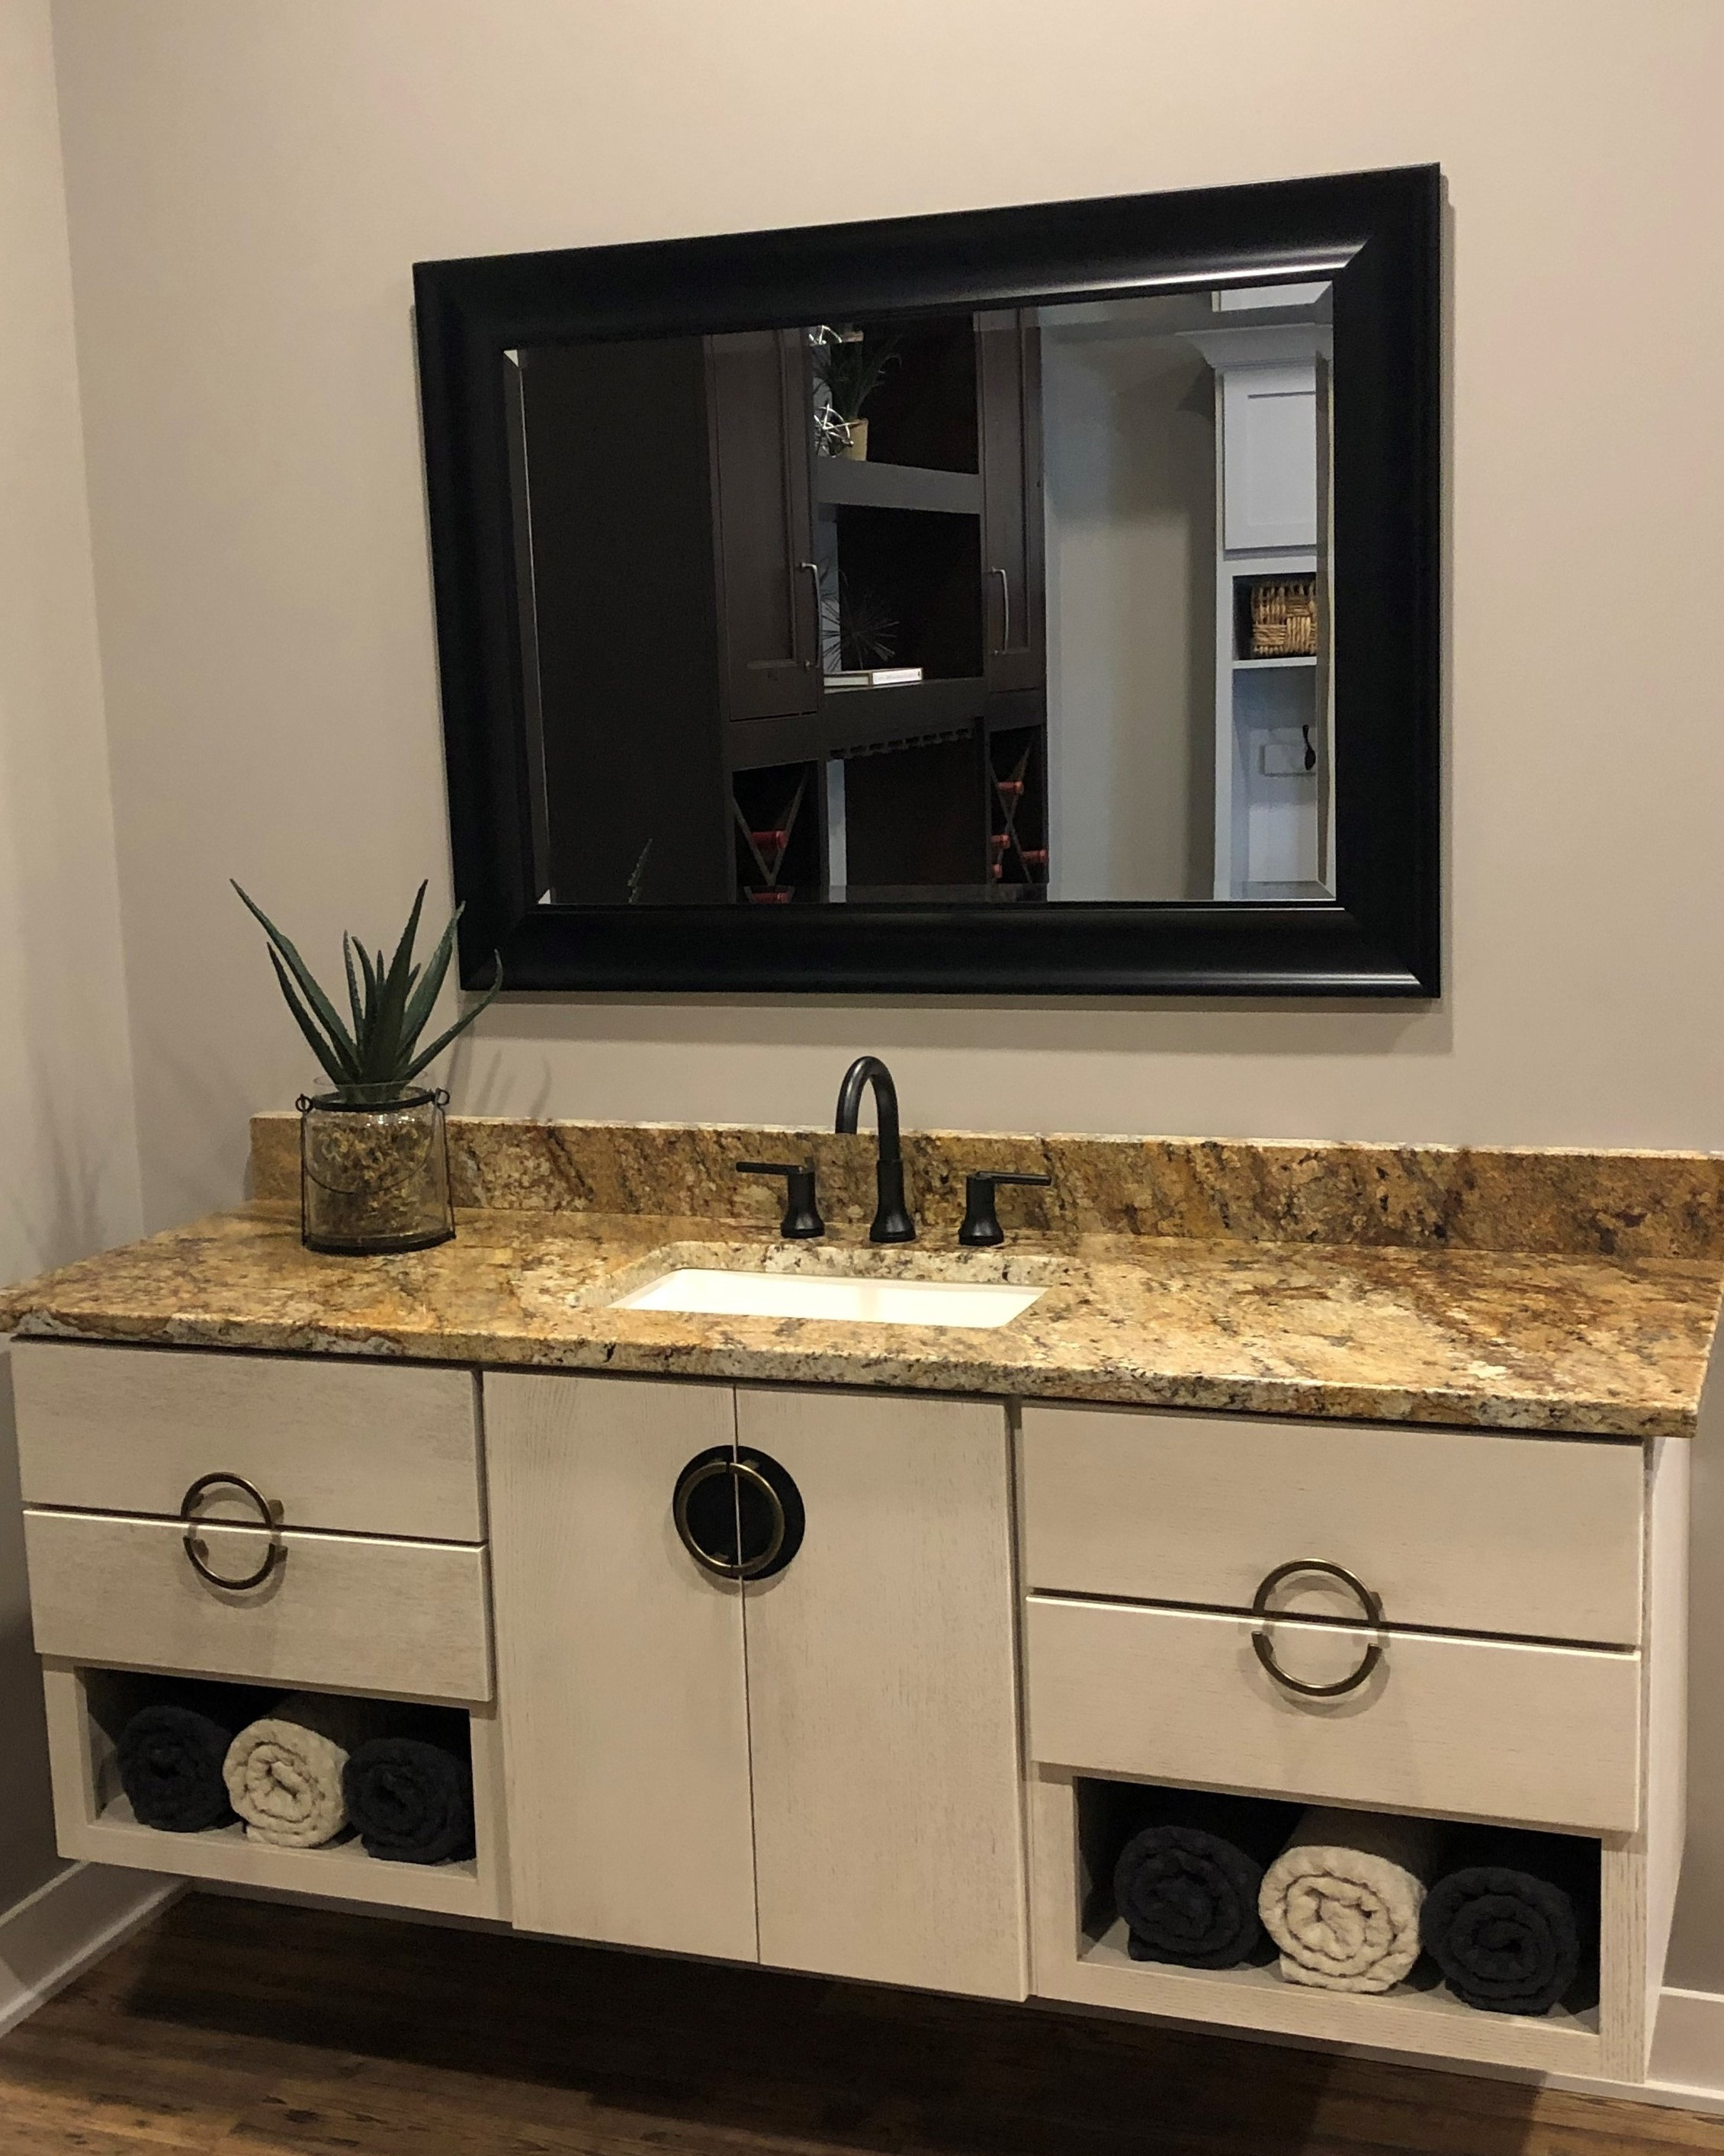 Bathroom Vanity - StarMark Cabinetry - Tempo door style in Quarter Sawn Oak finished with Macadamia tinted varnish with Chocolate Glaze